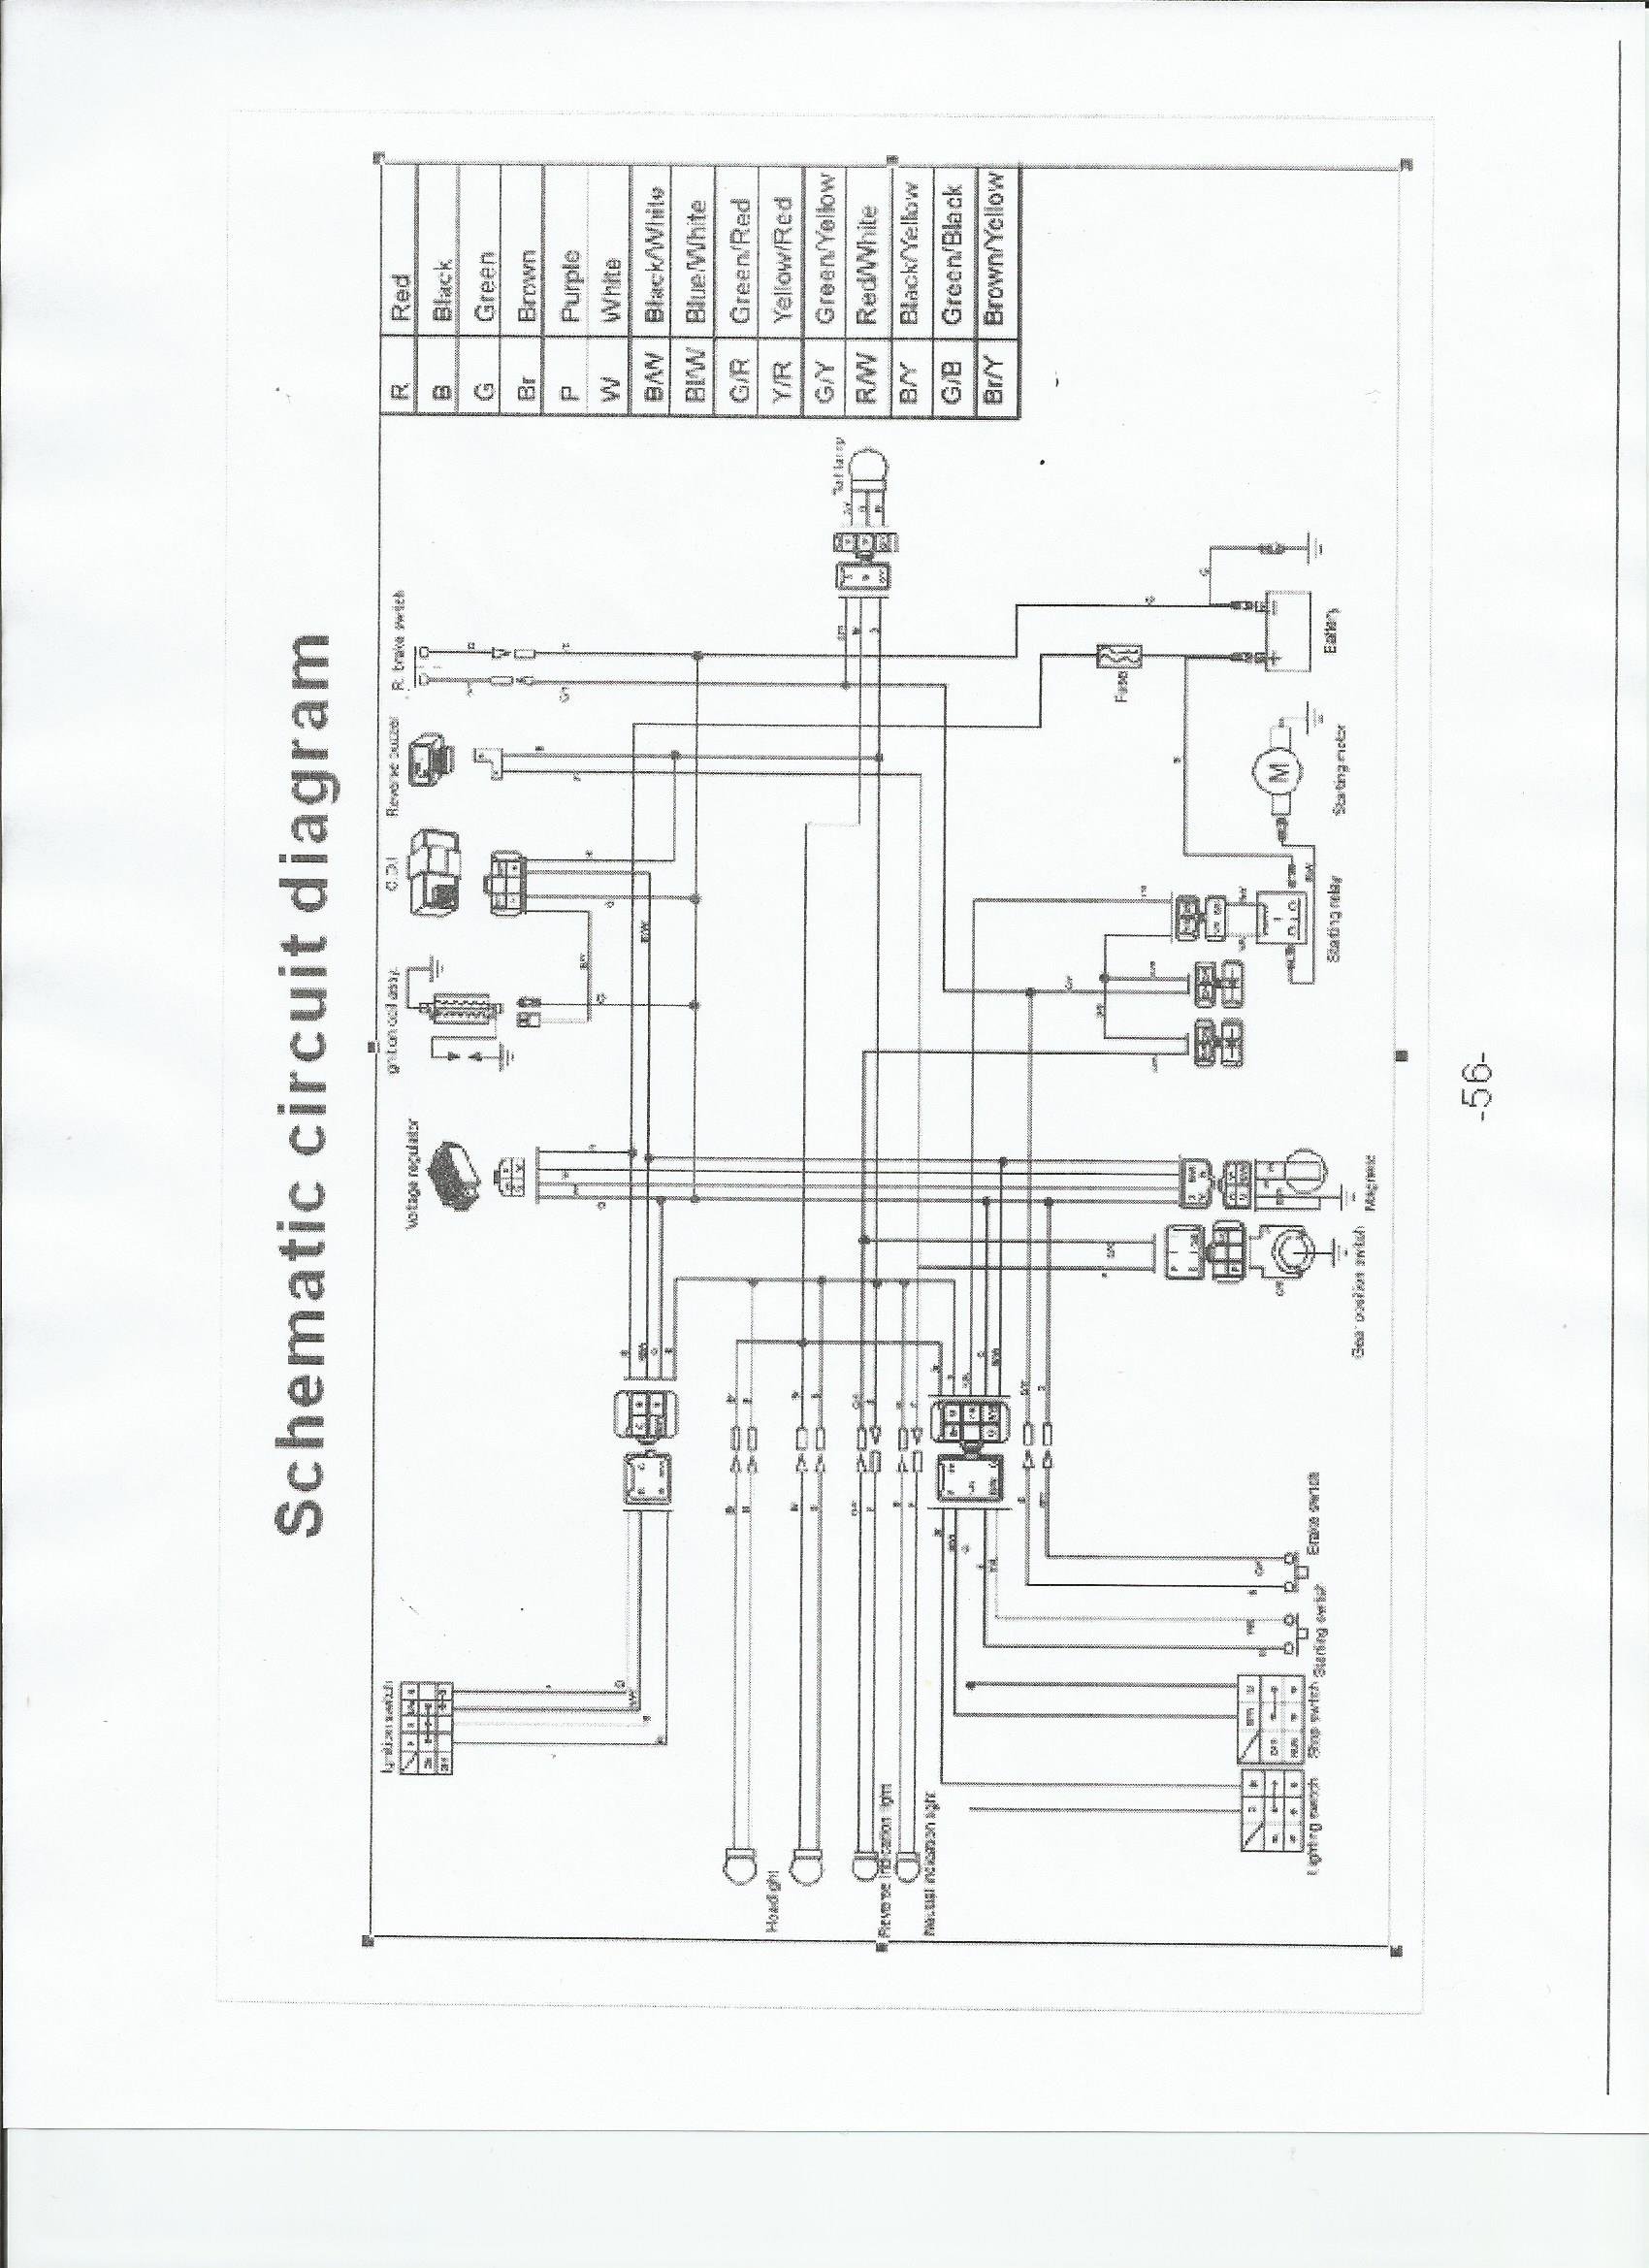 [DIAGRAM] Redcat Atv Wiring Diagrams FULL Version HD